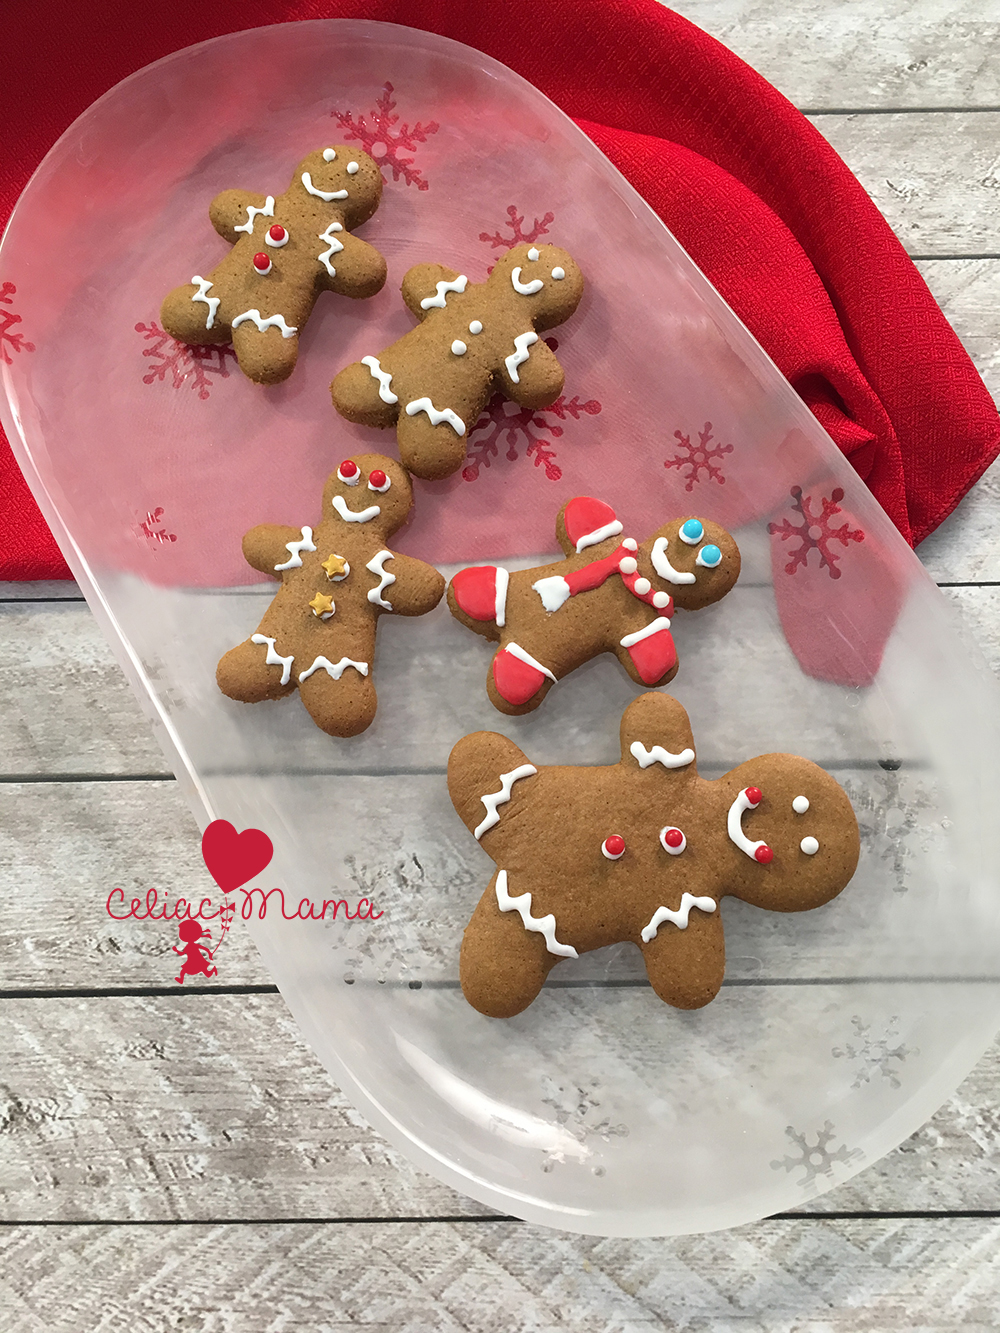 gluten-free-gingerbread-men-cookies-red-plate